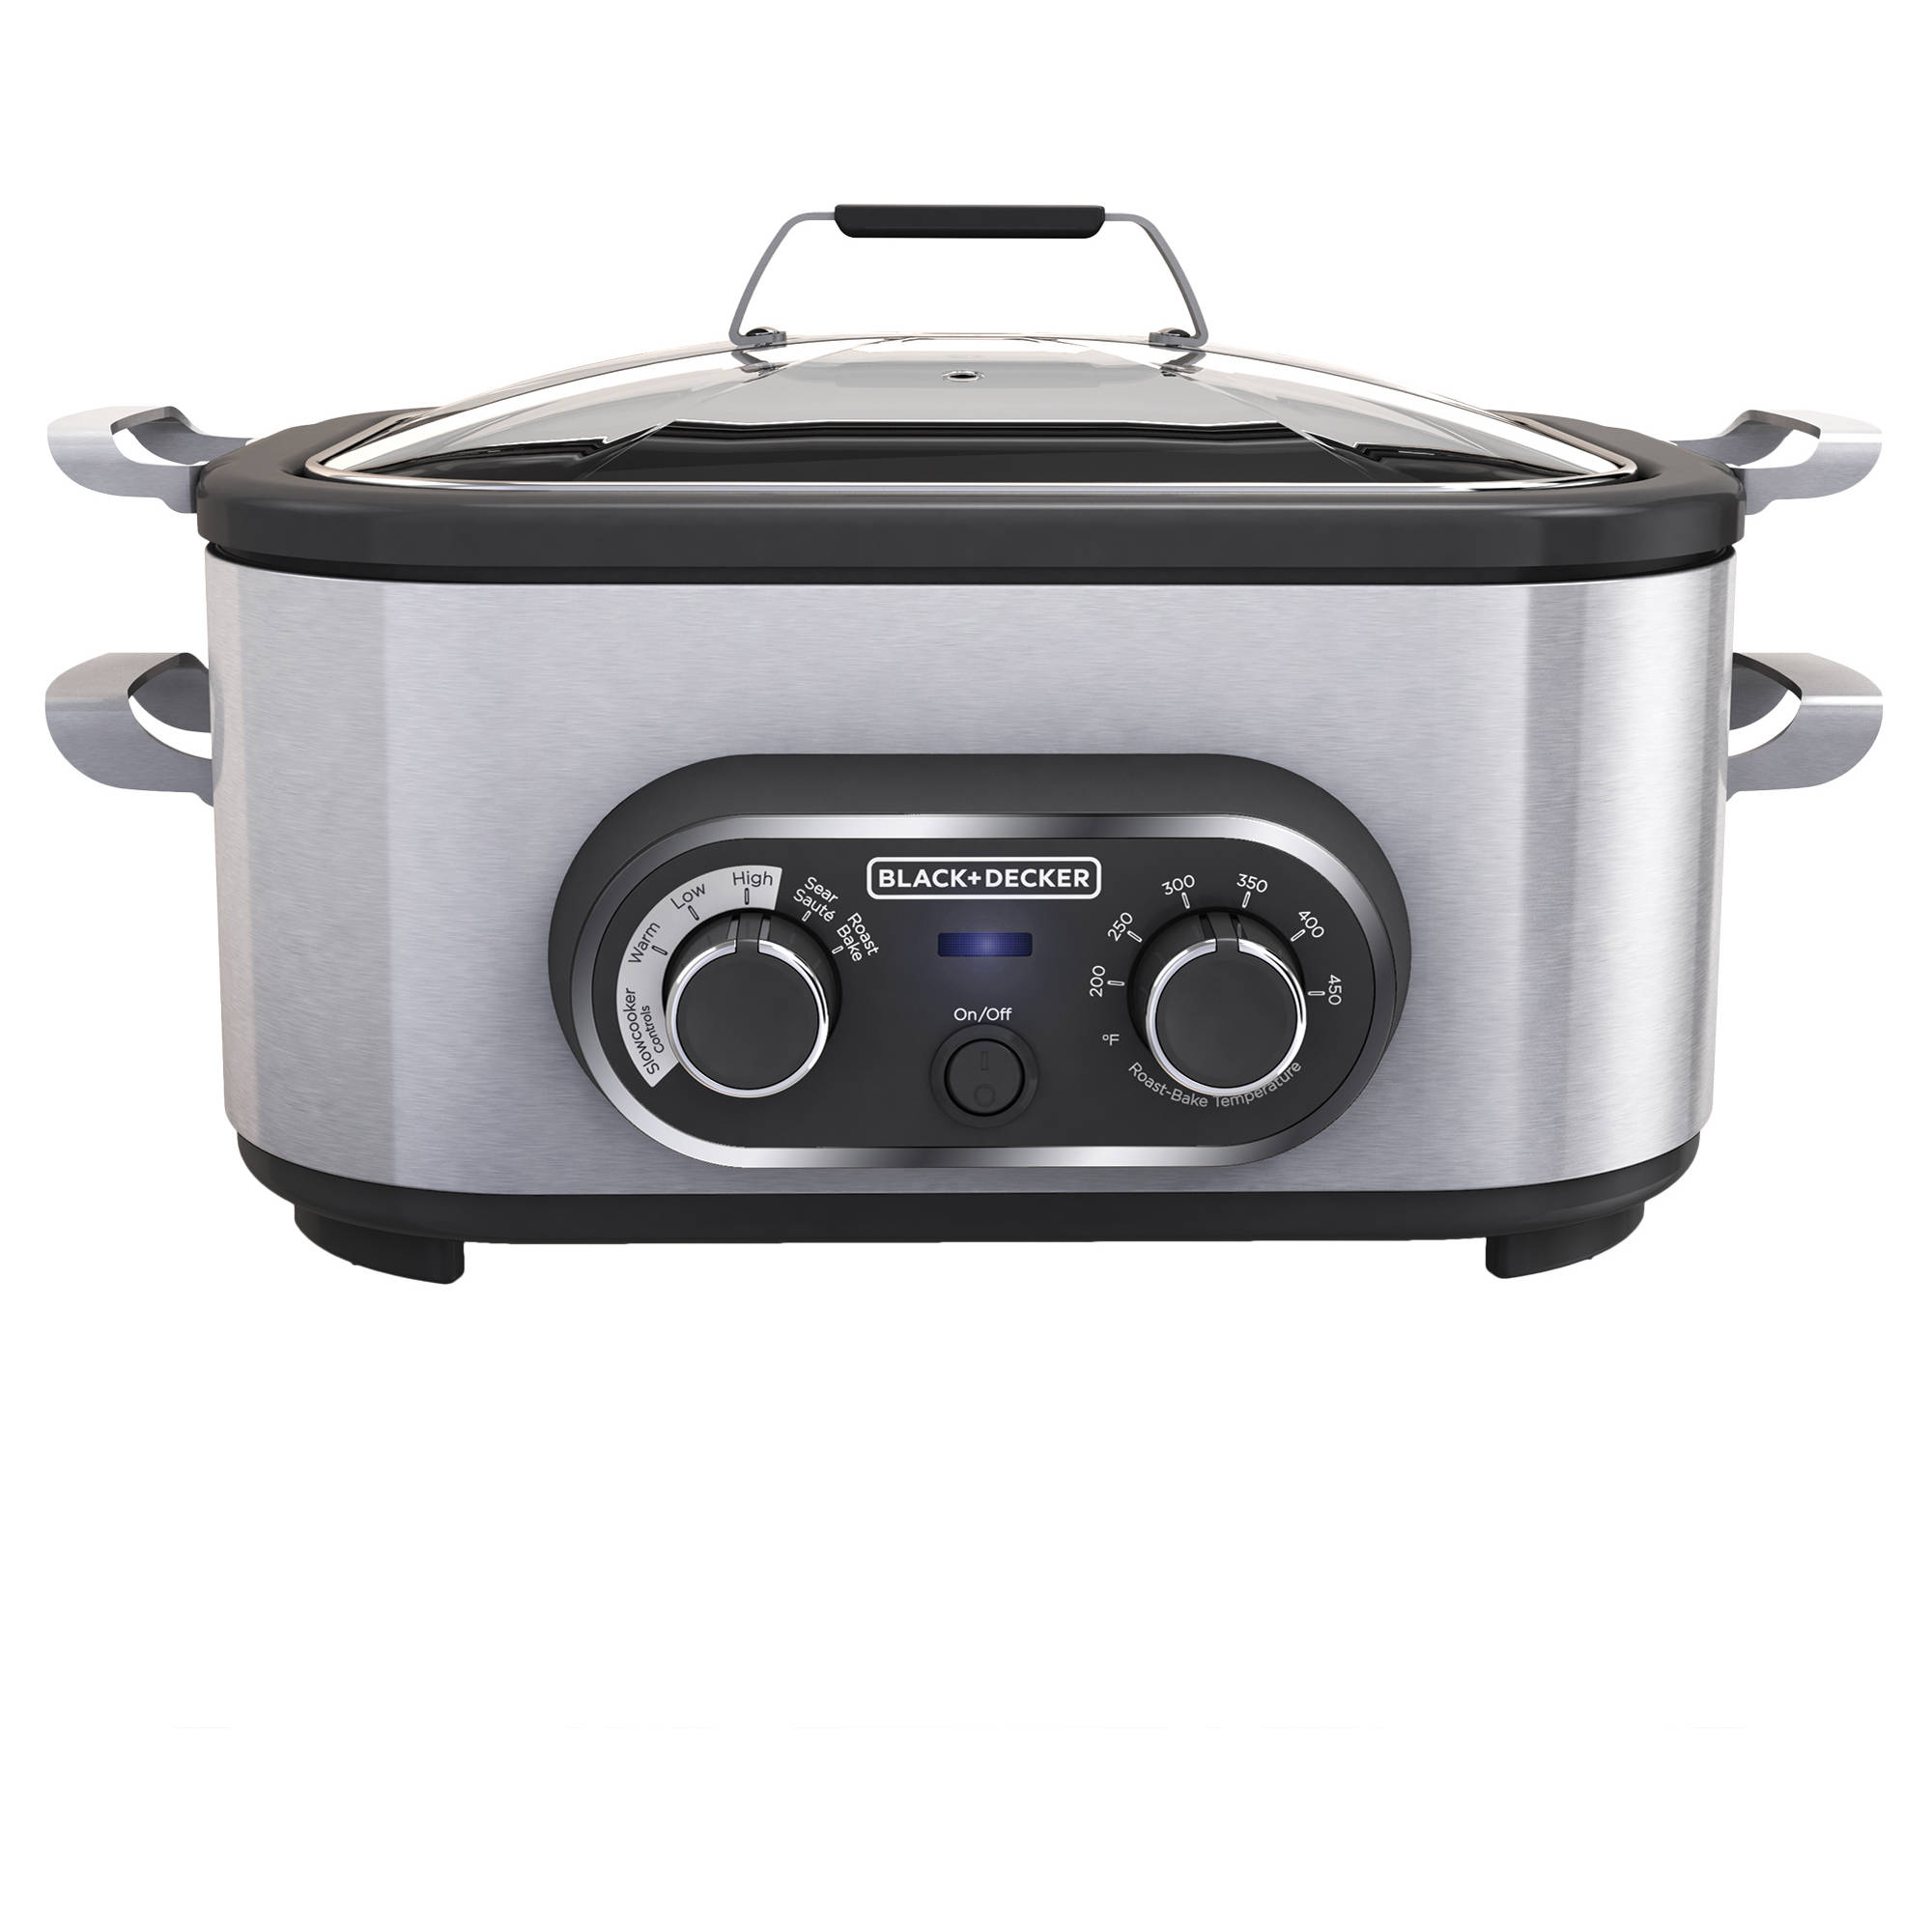 BLACK+DECKER 6-Quart Multi Function Slow Cooker, MC1100S